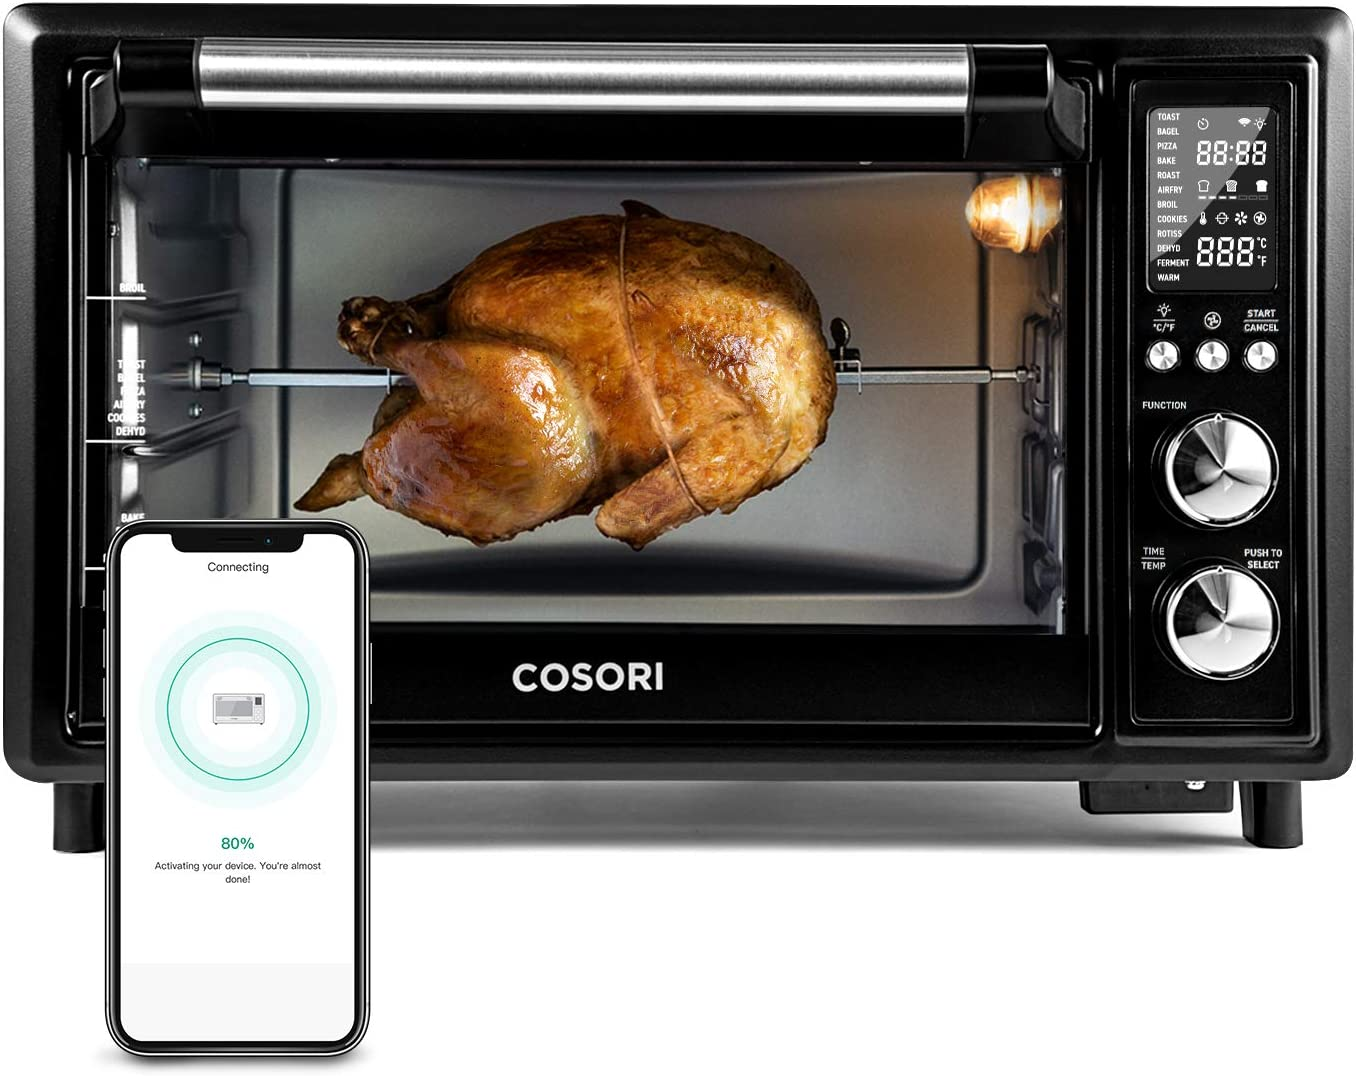 COSORI Com Smart 12-in-1 Air Fryer Toaster Oven Combo Convection Rotisserie & Dehydrator for Chicken, Pizza and Cookies, Recipe&Accessories Included, 30L, Black